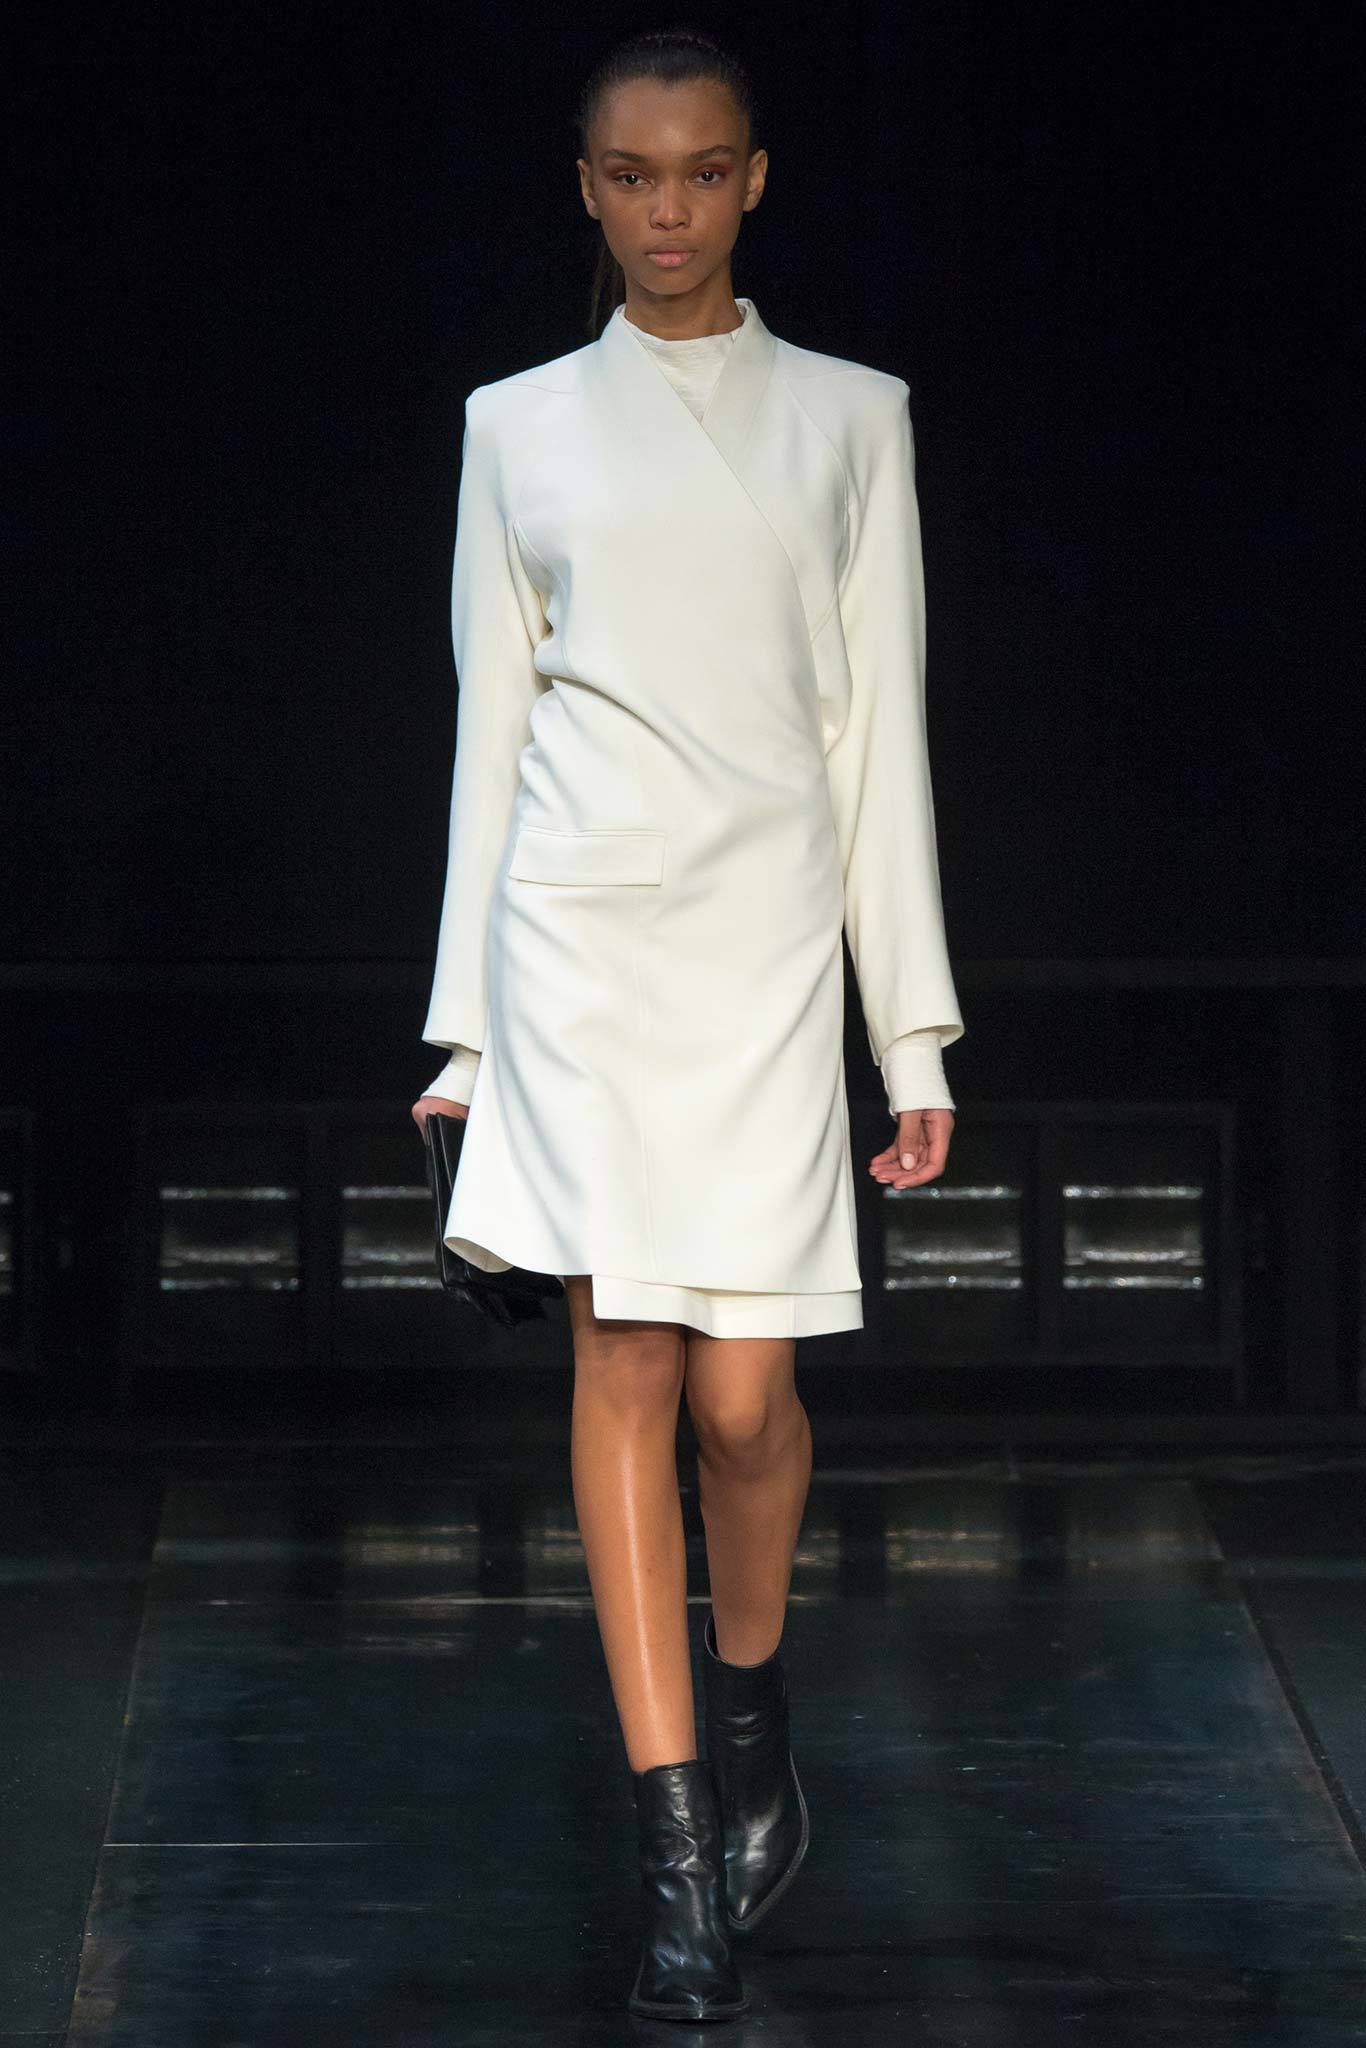 StyleAndMinimalism | Collection Best Bits | What To Wear From AW14 | Helmut Lang AW14 | Cream Wrap Coat Dress